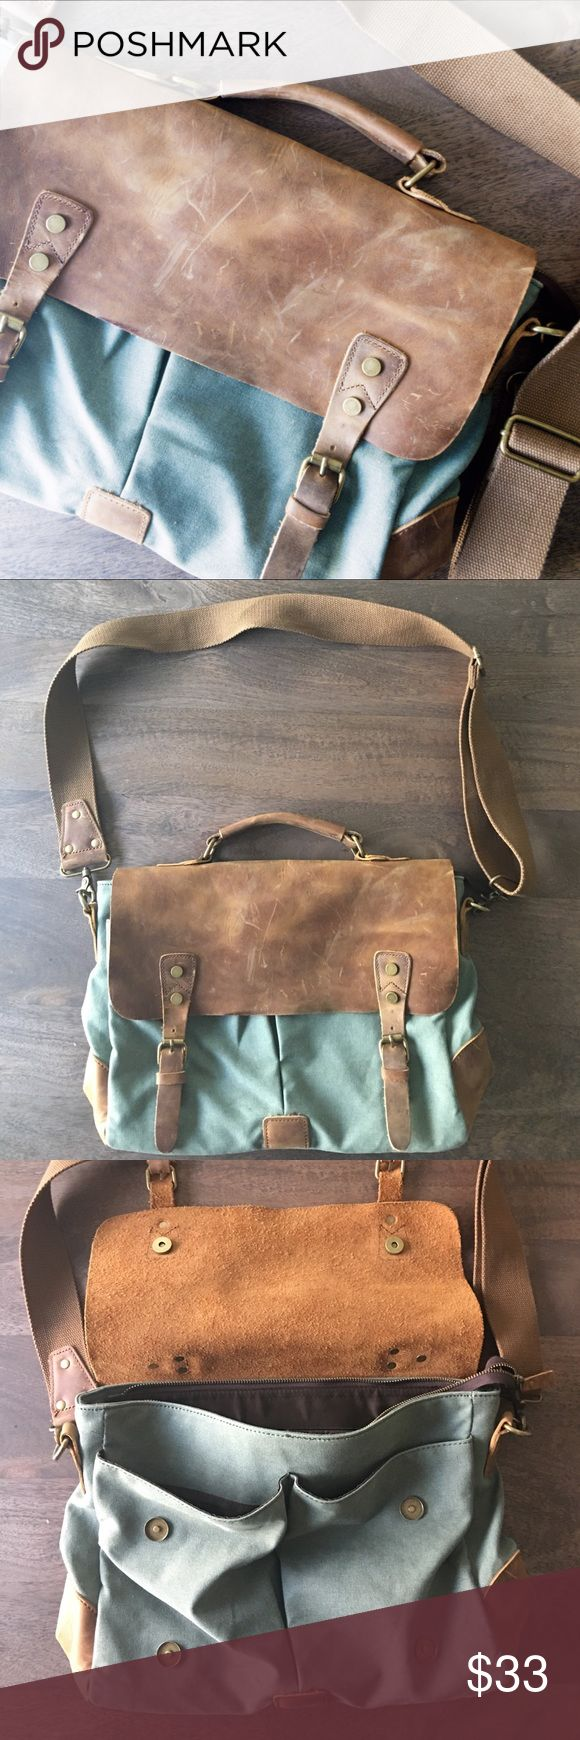 """Leather and canvas laptop bag Excellent used condition. Adjustable strap. Real leather and clean durable canvas. No brand name. 14.5"""" wide/10.5"""" high Bags Laptop Bags"""